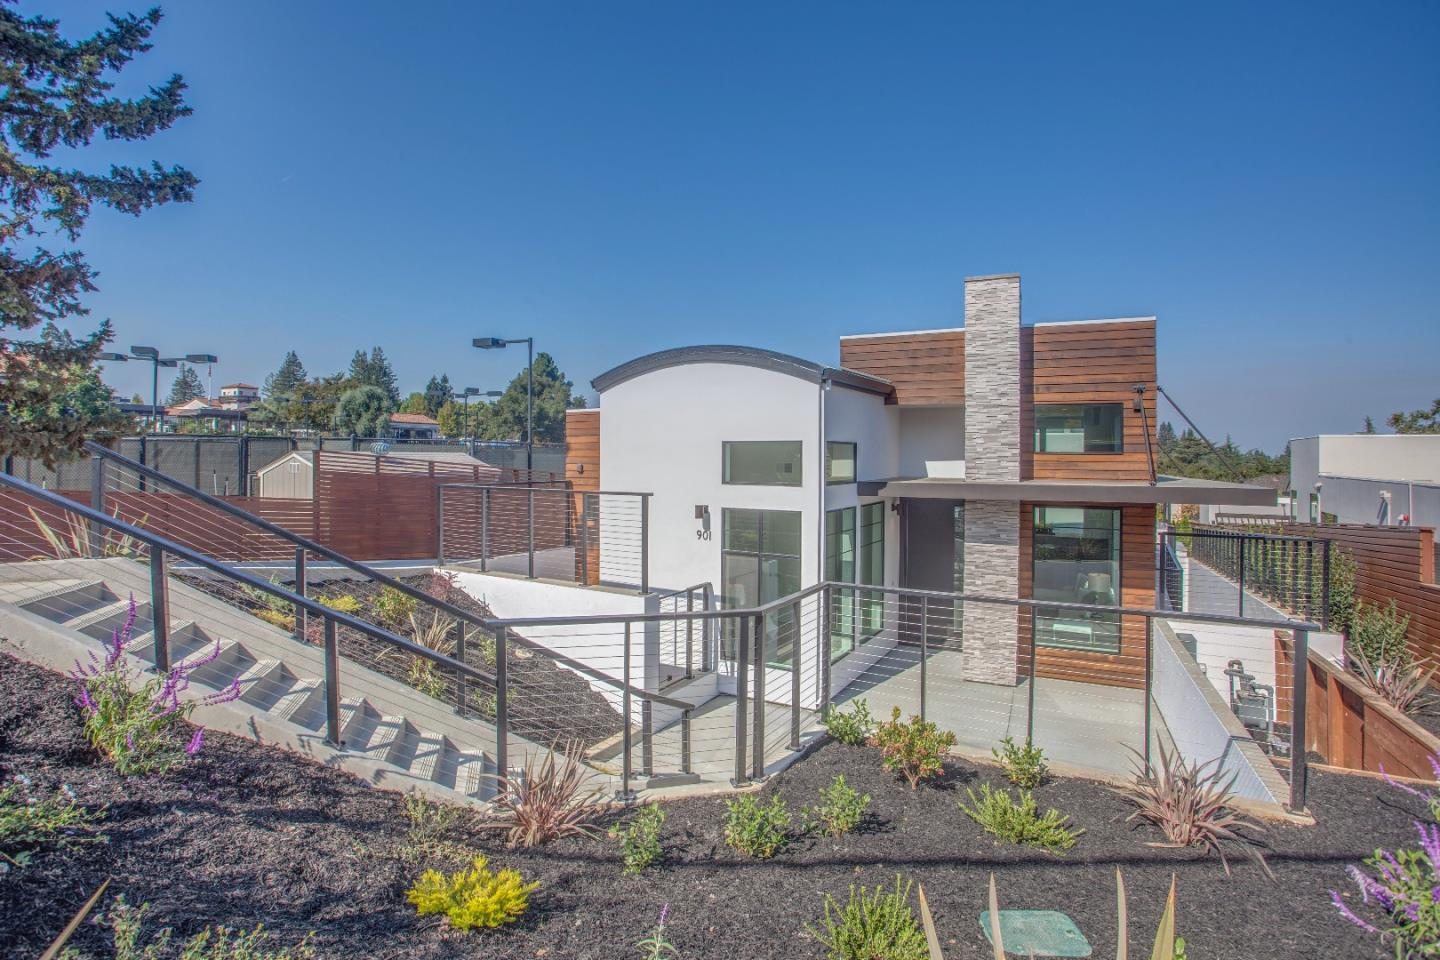 Single Family Home for Sale at 901 Loyola Drive 901 Loyola Drive Los Altos, California 94024 United States